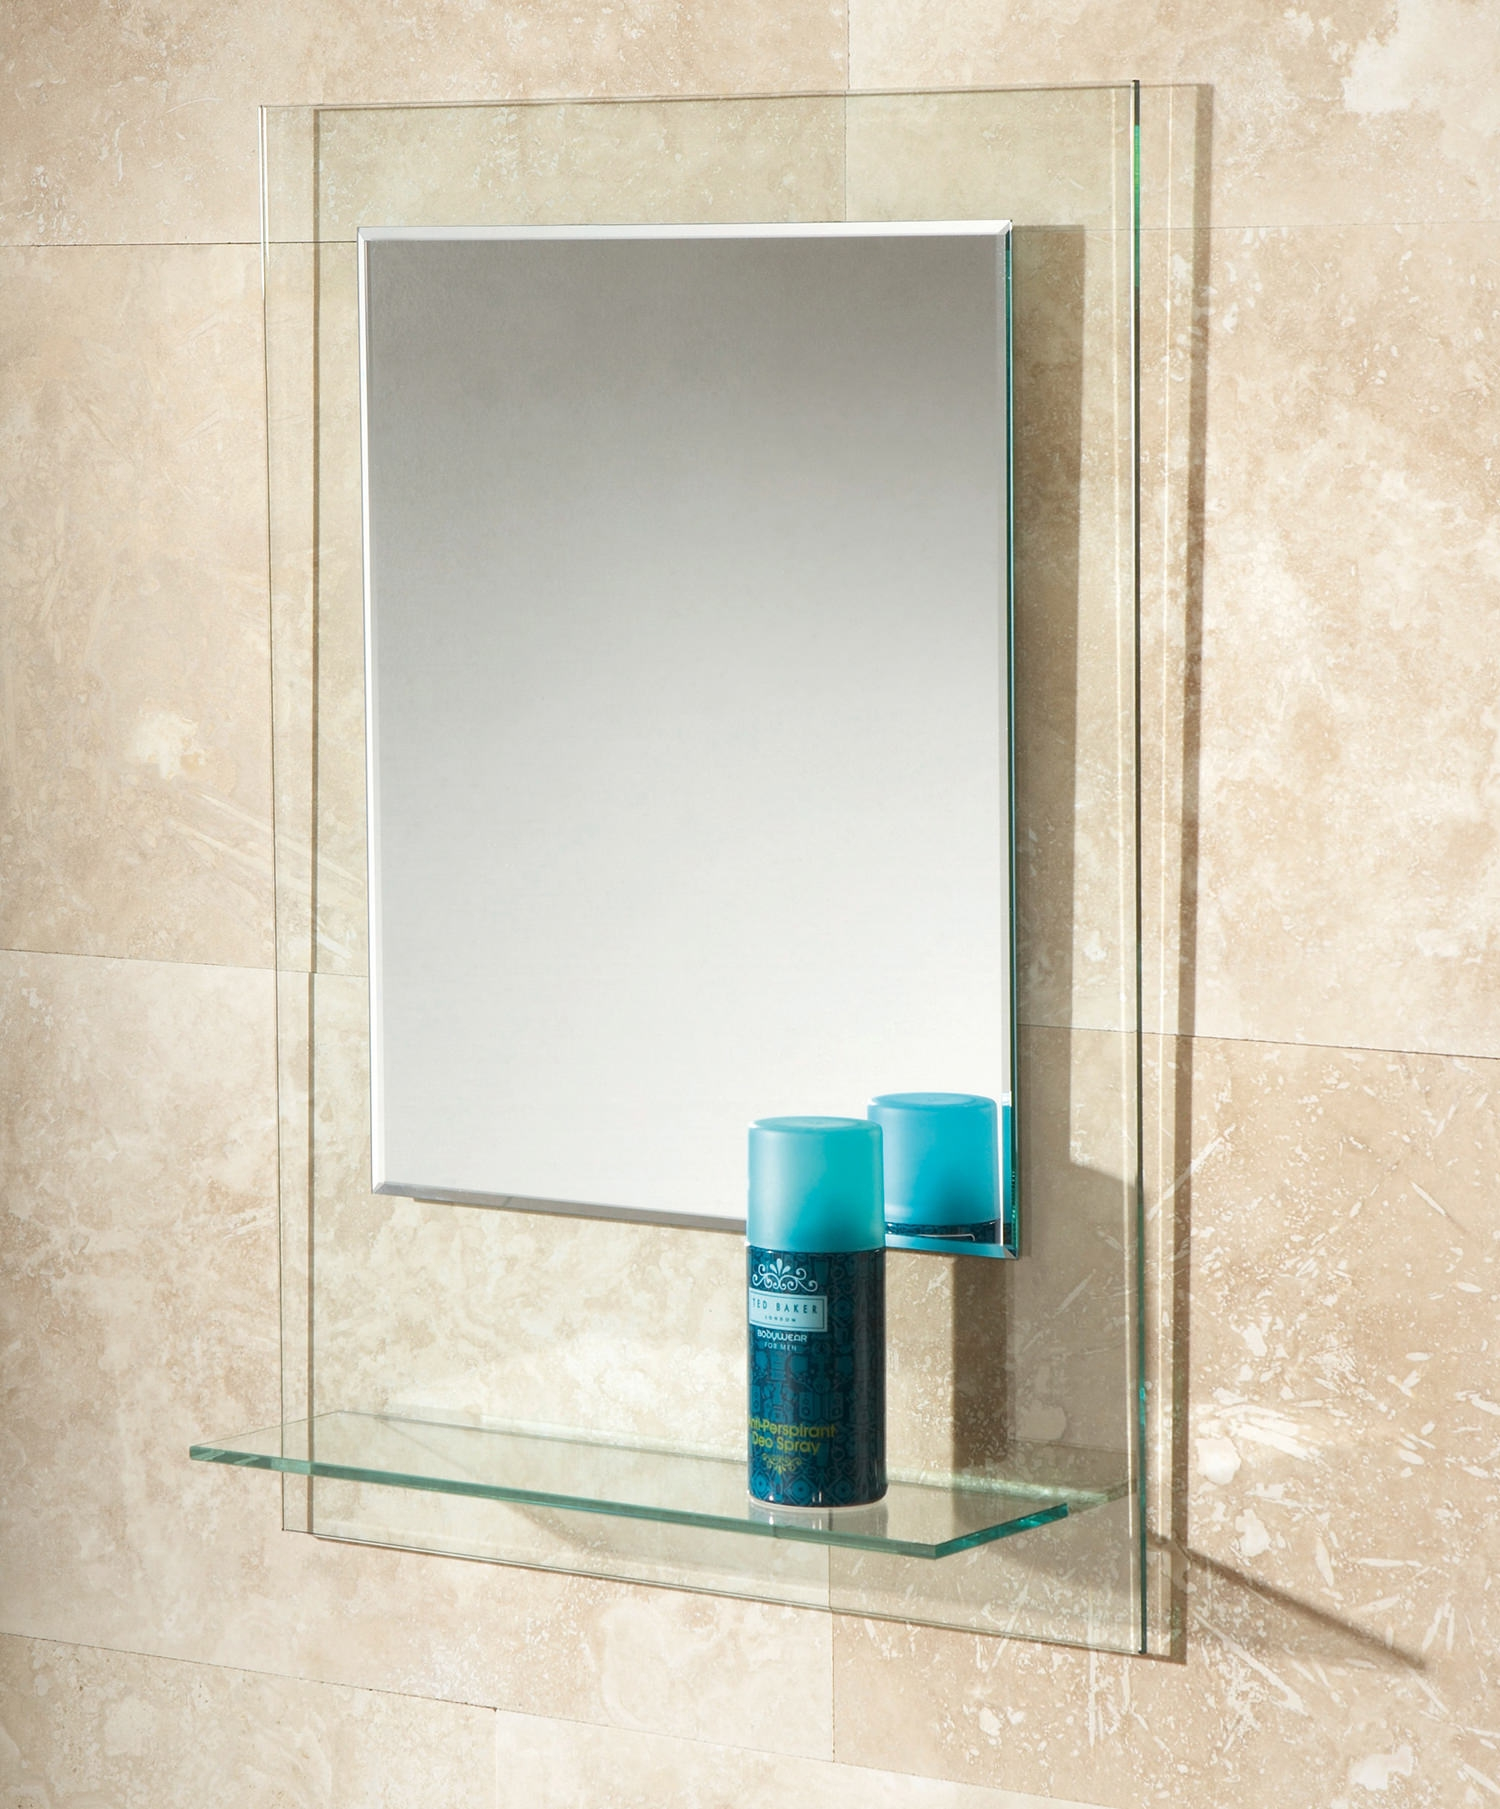 Hib Fuzion Bevelled Edge Mirror With Glass Shelf 72300100 Within Mirror Bevelled Edge (Image 8 of 15)